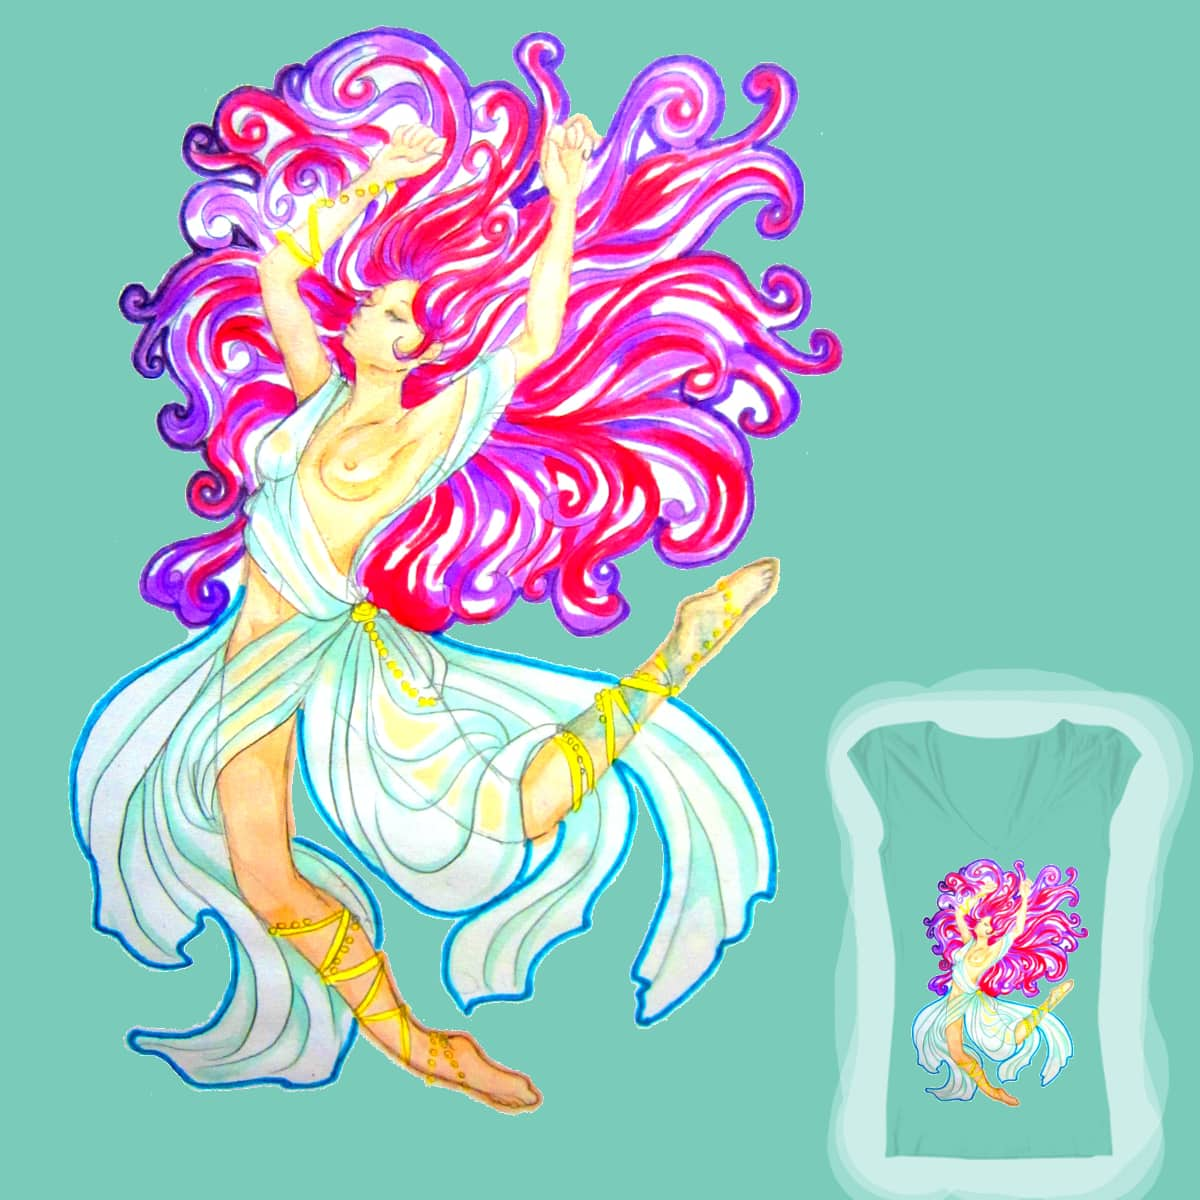 Floating girl by Vulpes_Zerda on Threadless